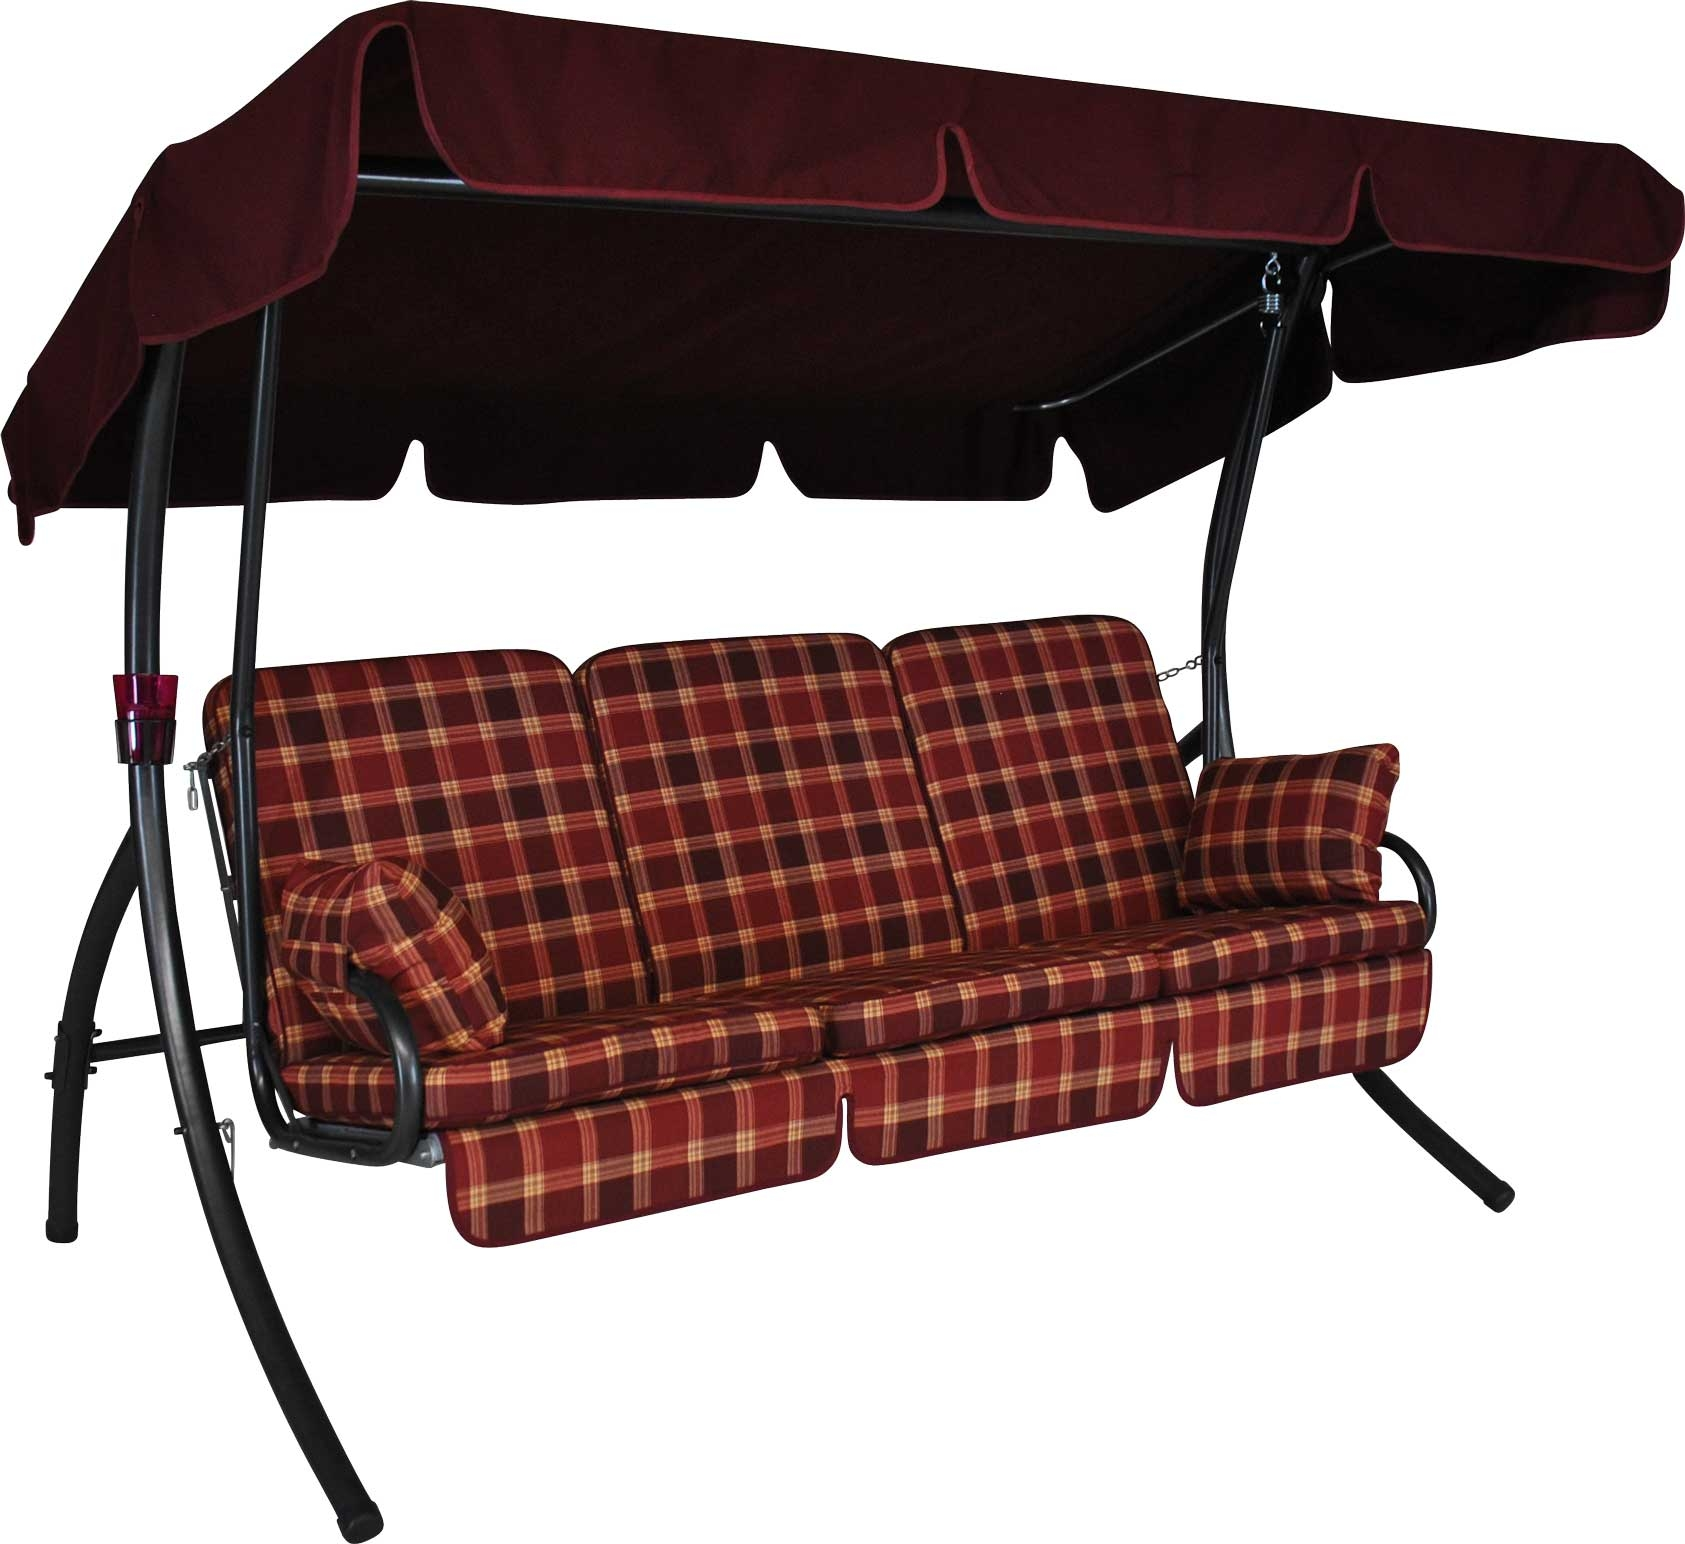 Angerer Hollywoodschaukel Comfort Rio bordeaux - 3-Sitzer